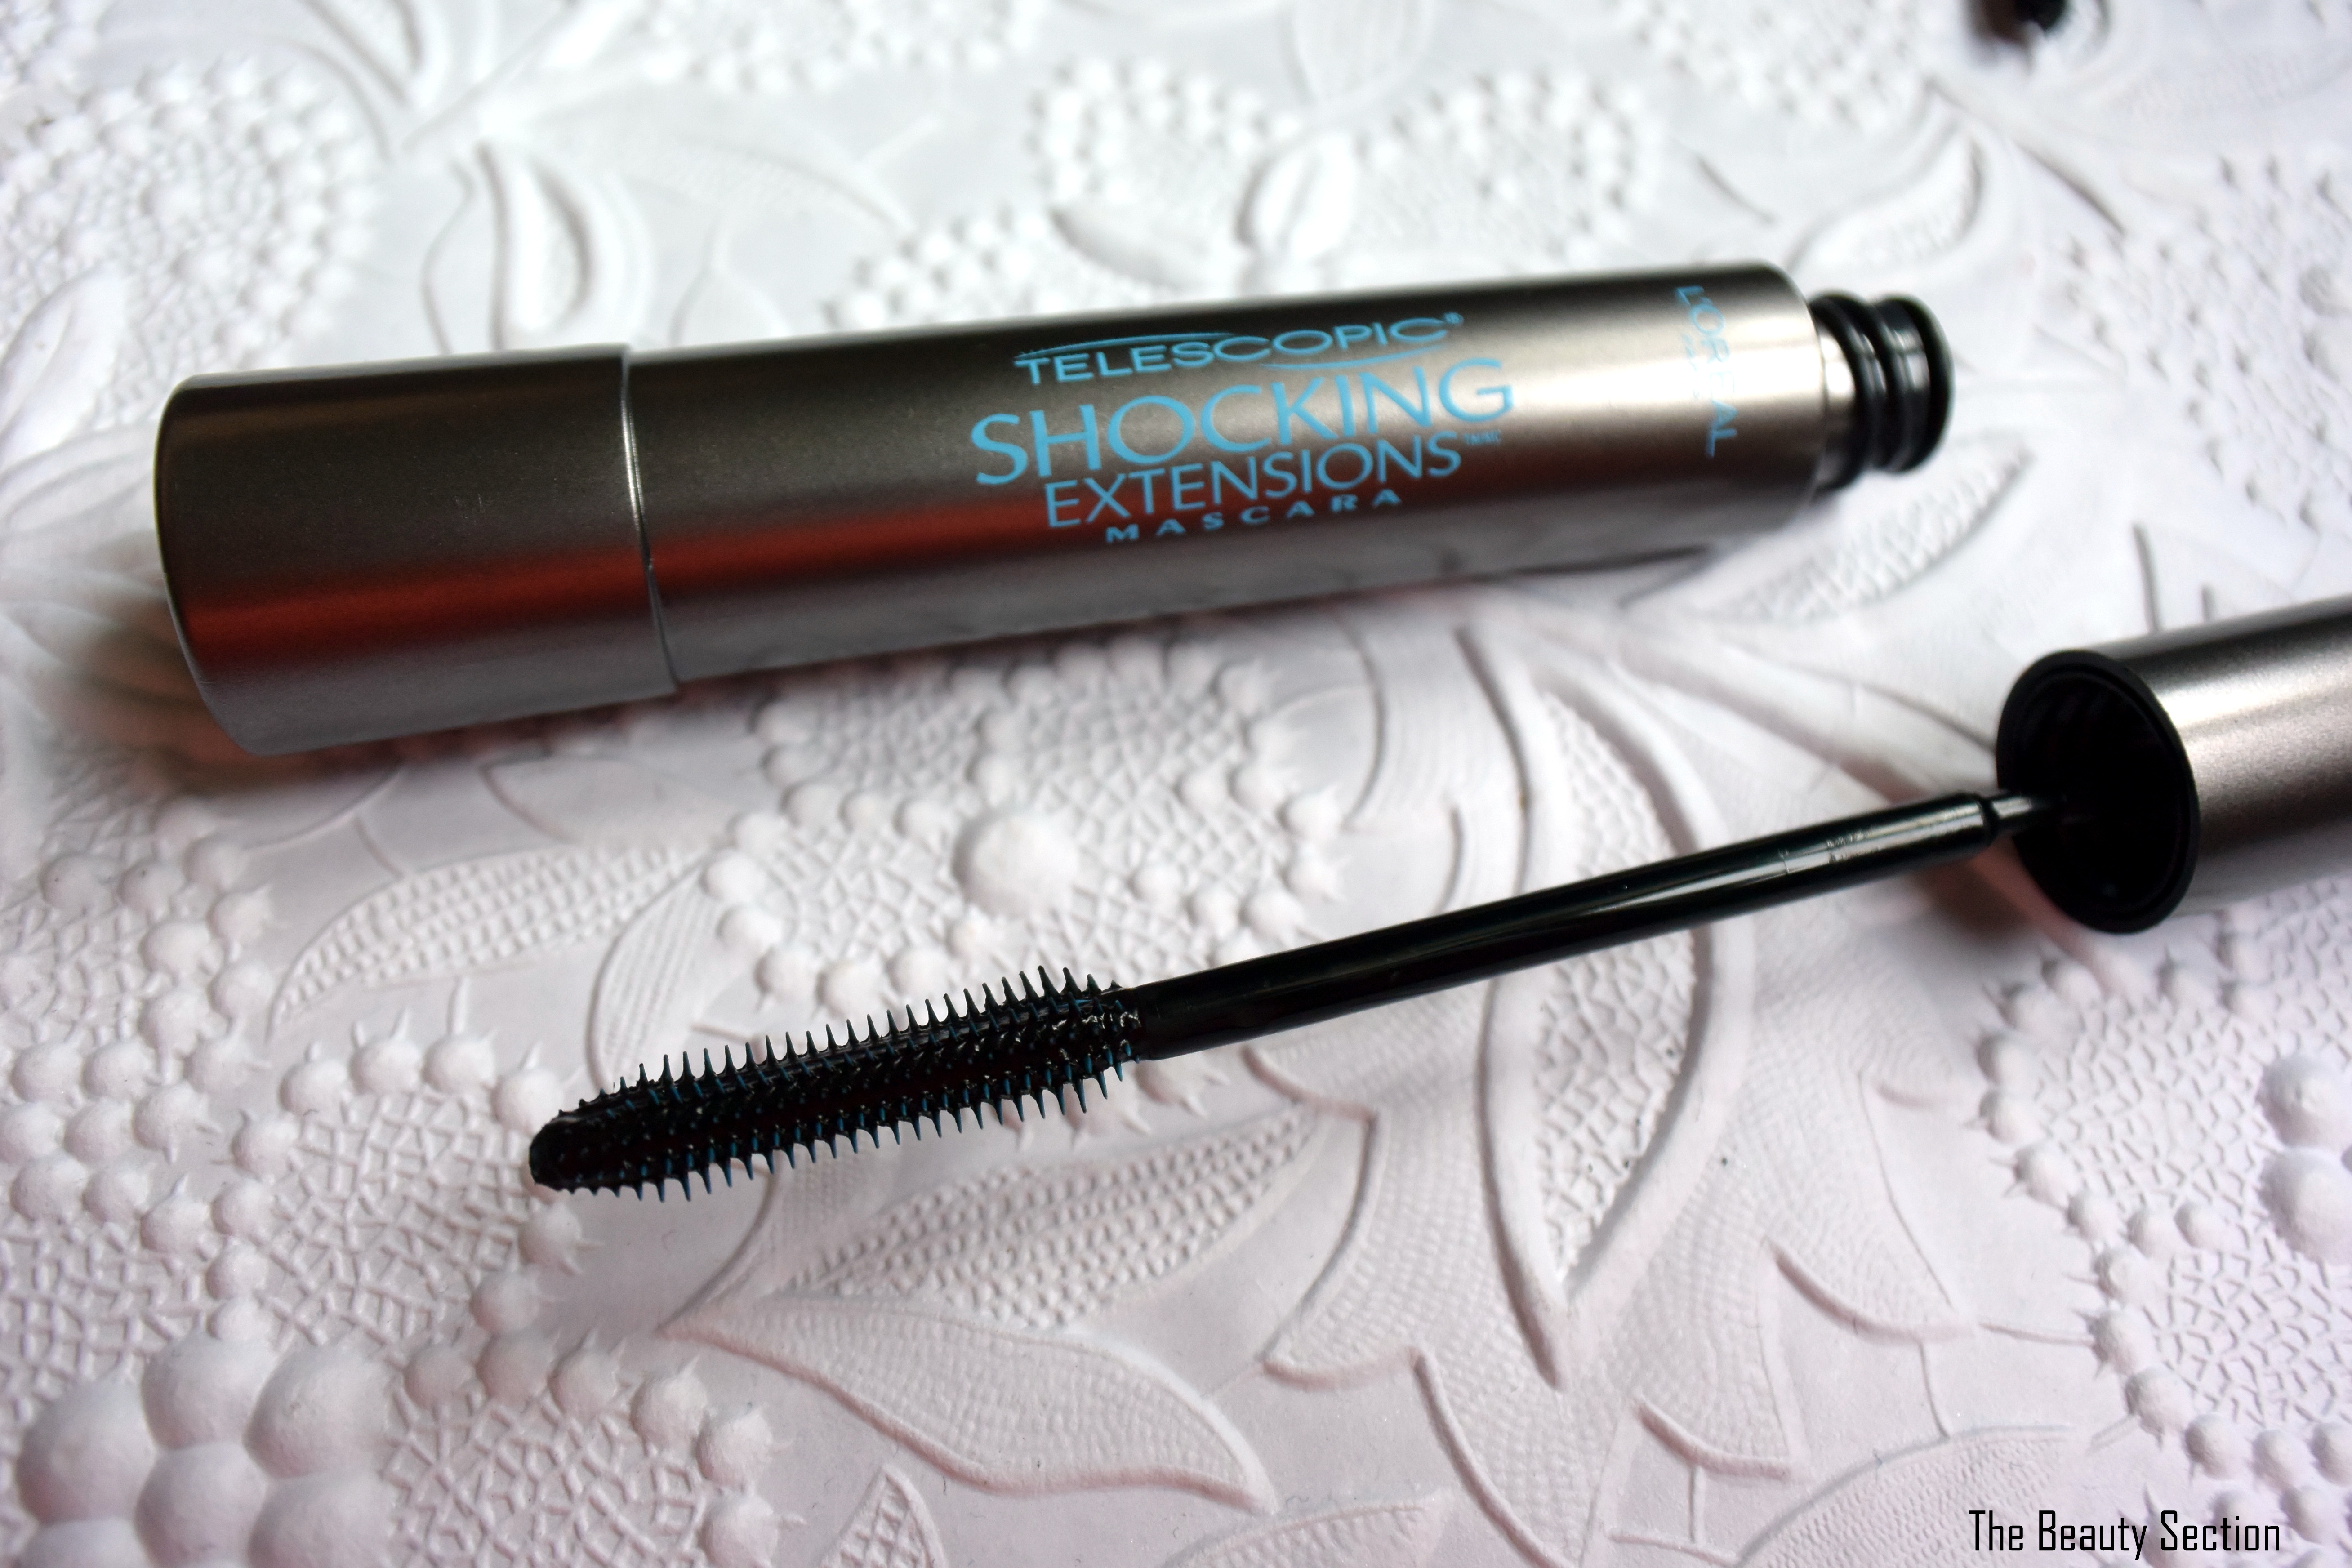 Wedding Makeup: Mascara, water proof, cry proof volumizing and lengthening perfect for your wedding day!